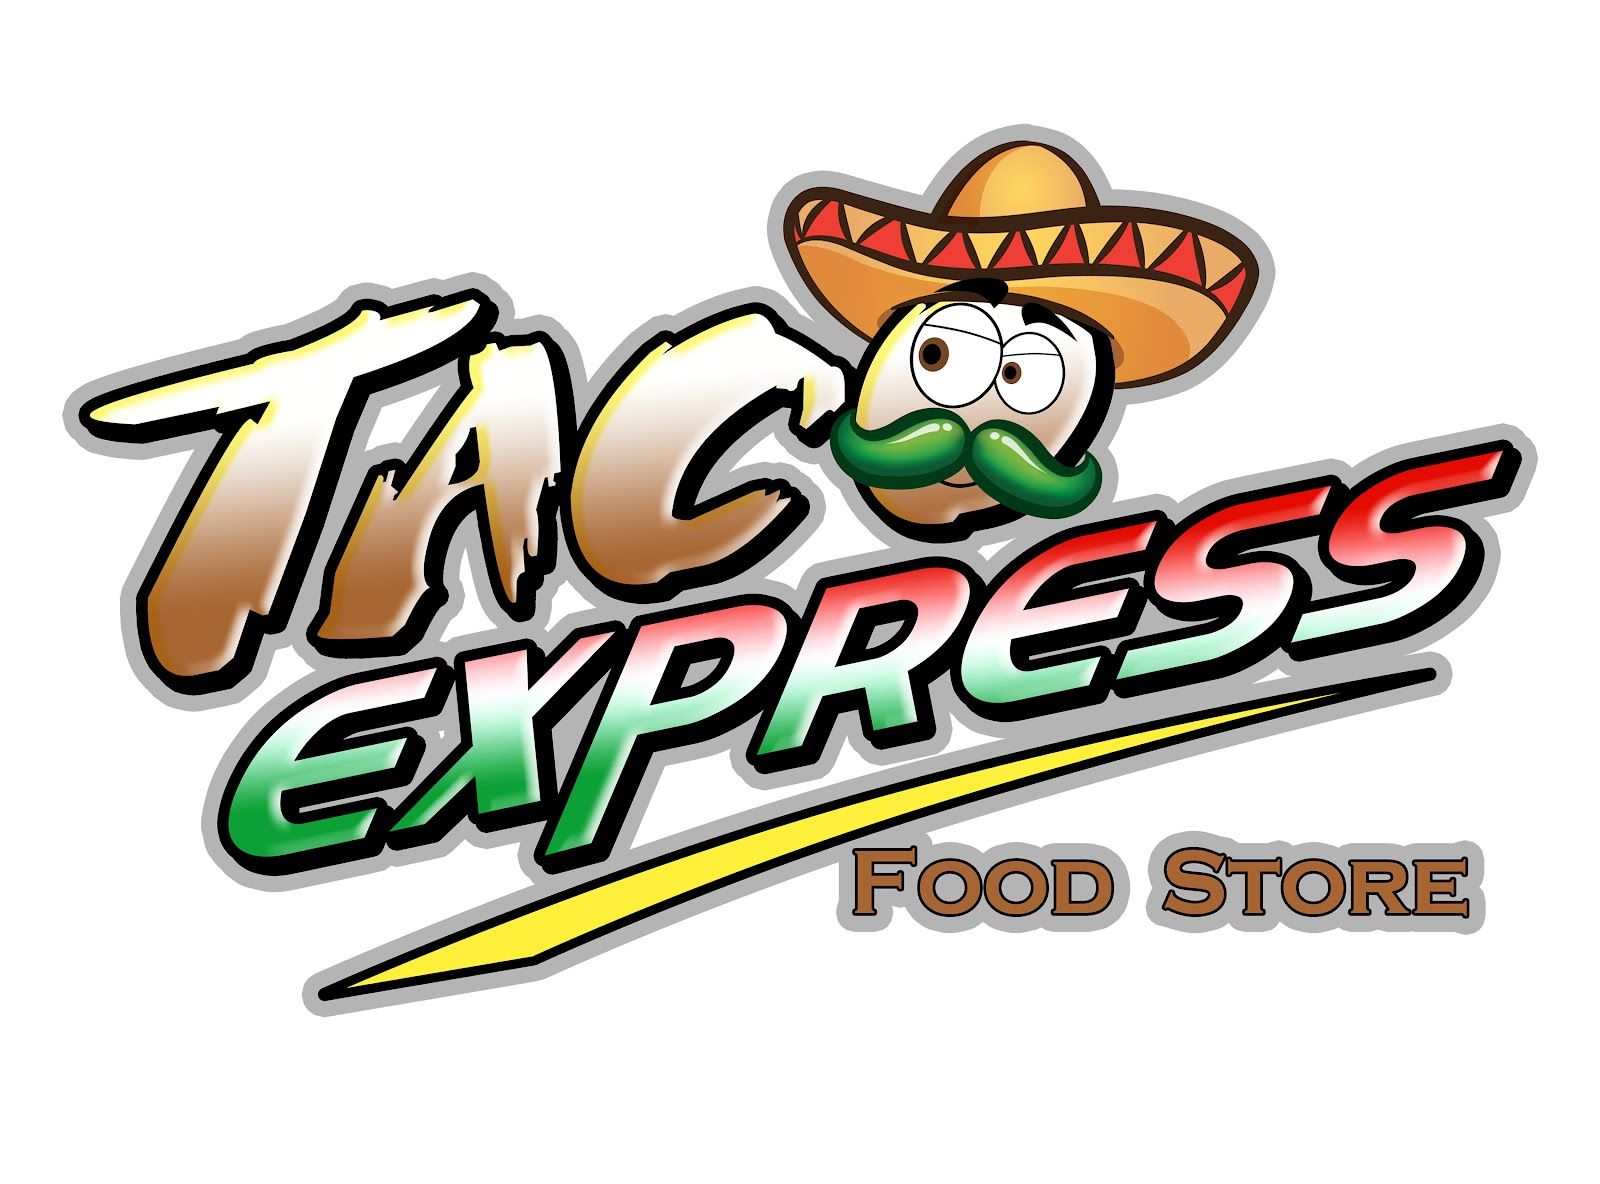 Taco Express Food Store